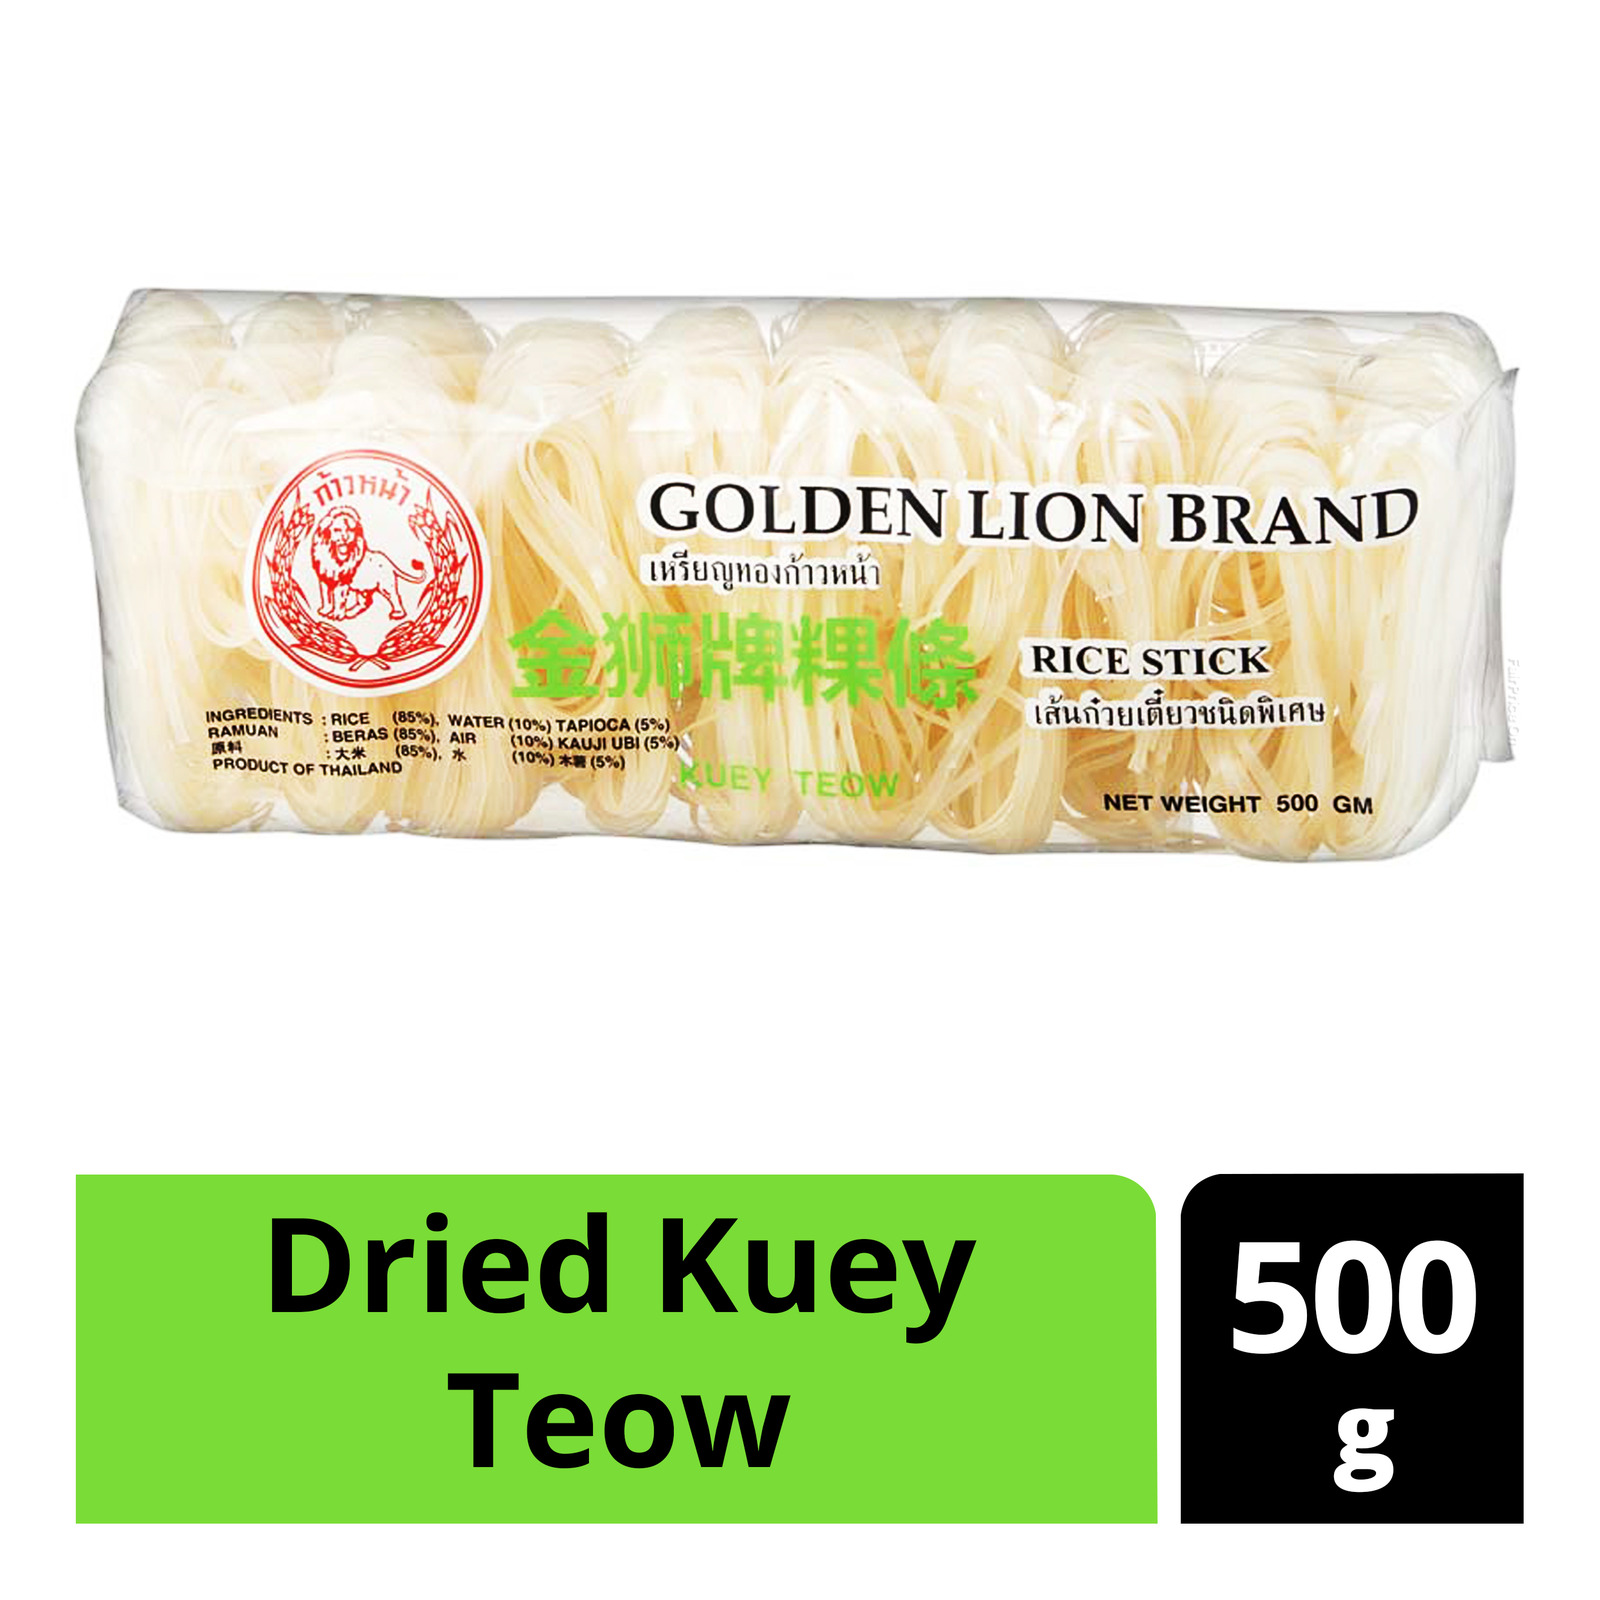 Golden Lion Brand Dried Kuey Teow